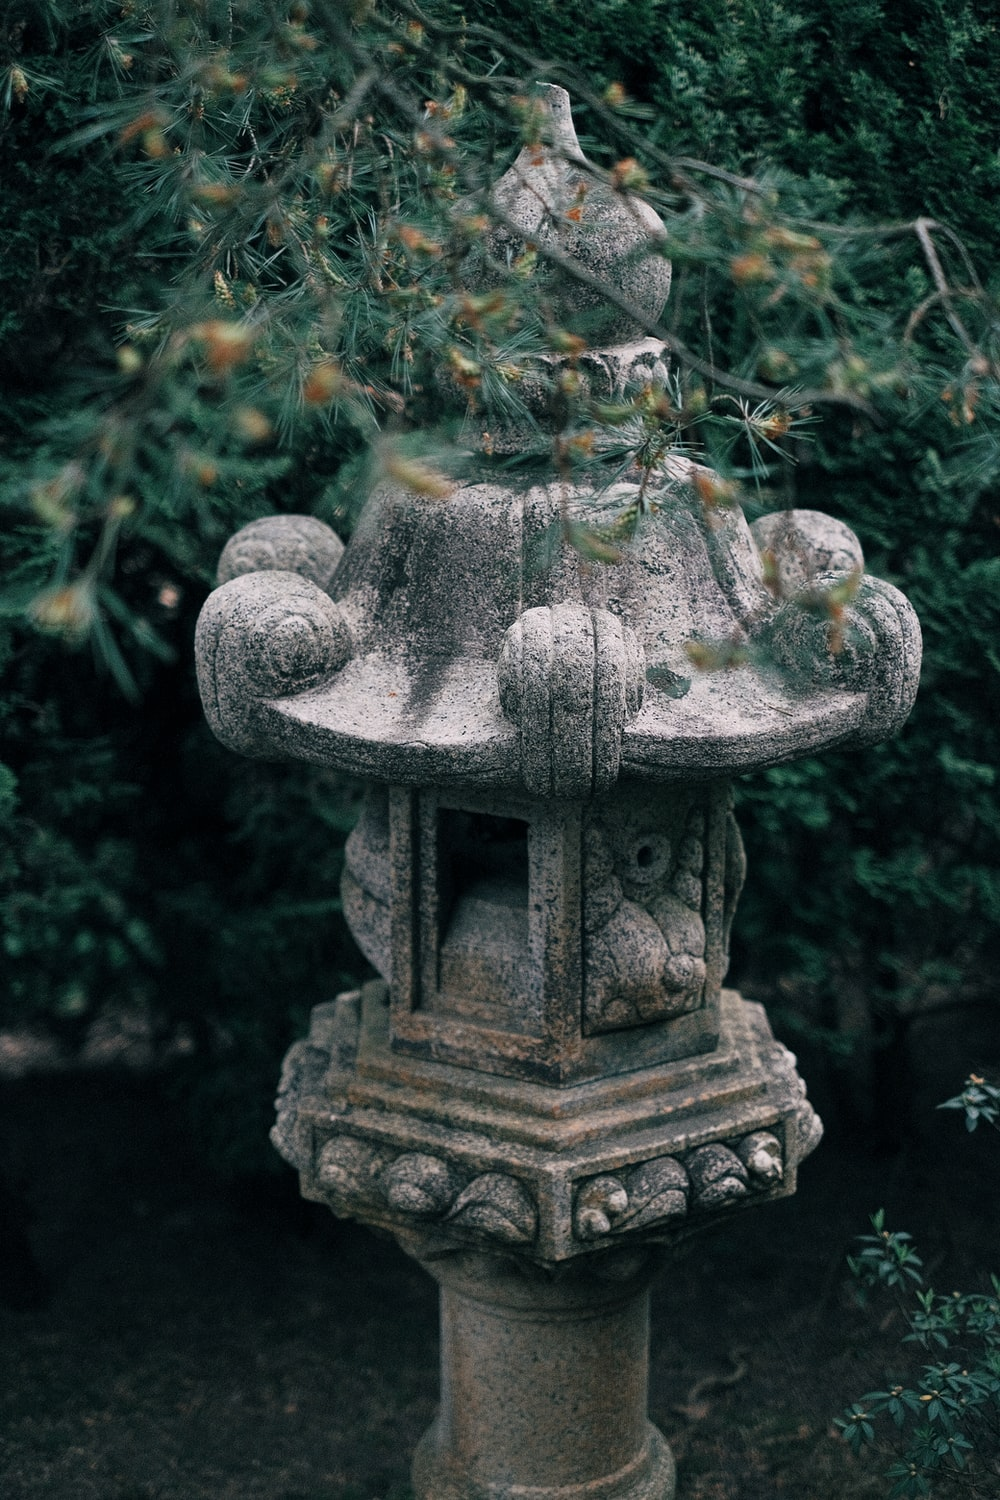 gray concrete statue surrounded by green leaves